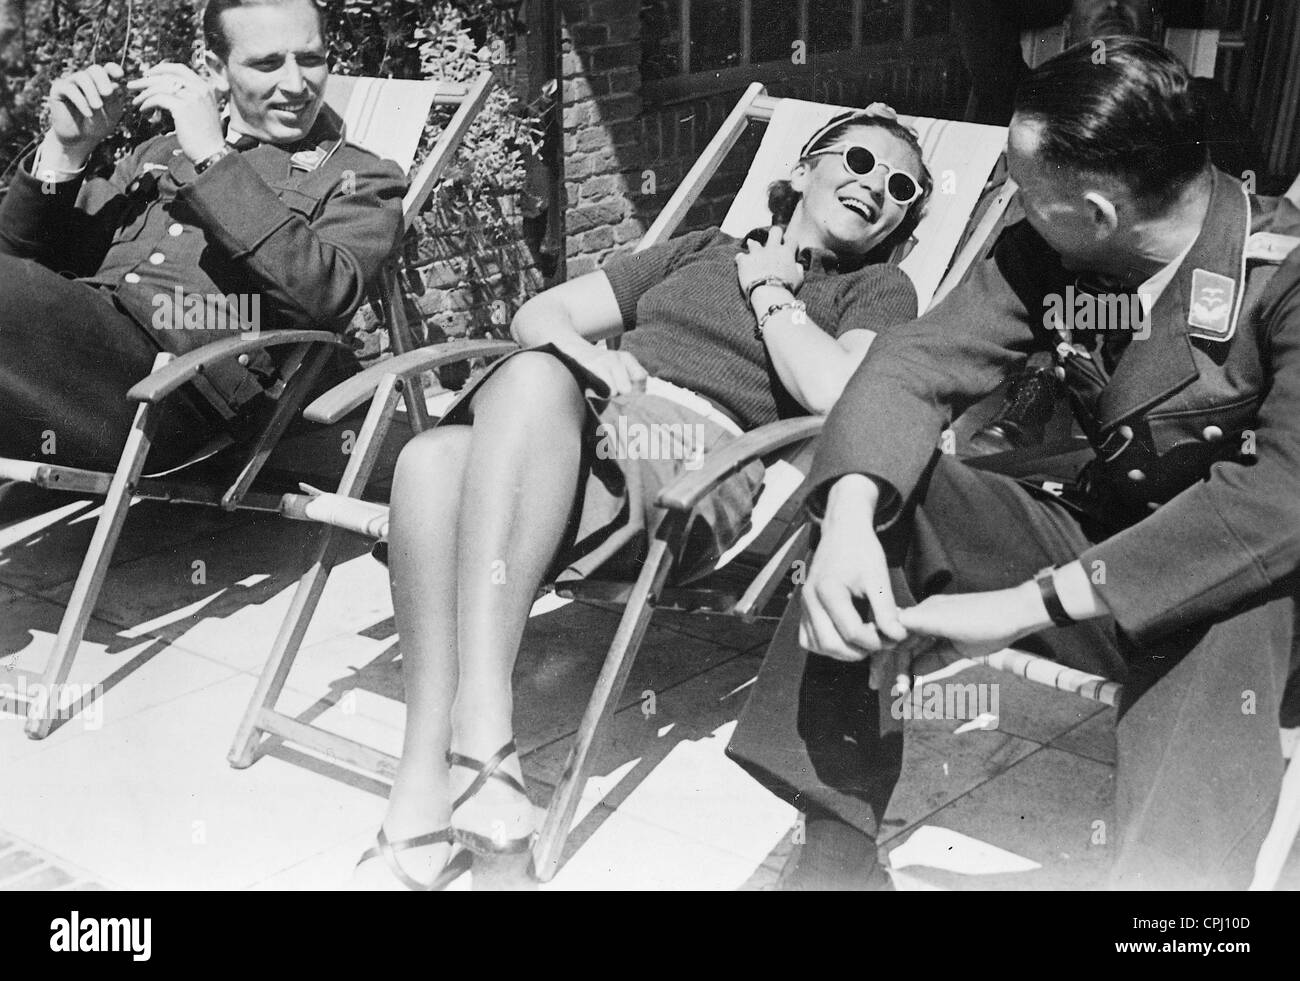 Elly Beinhorn in a deck chair, 1941 - Stock Image